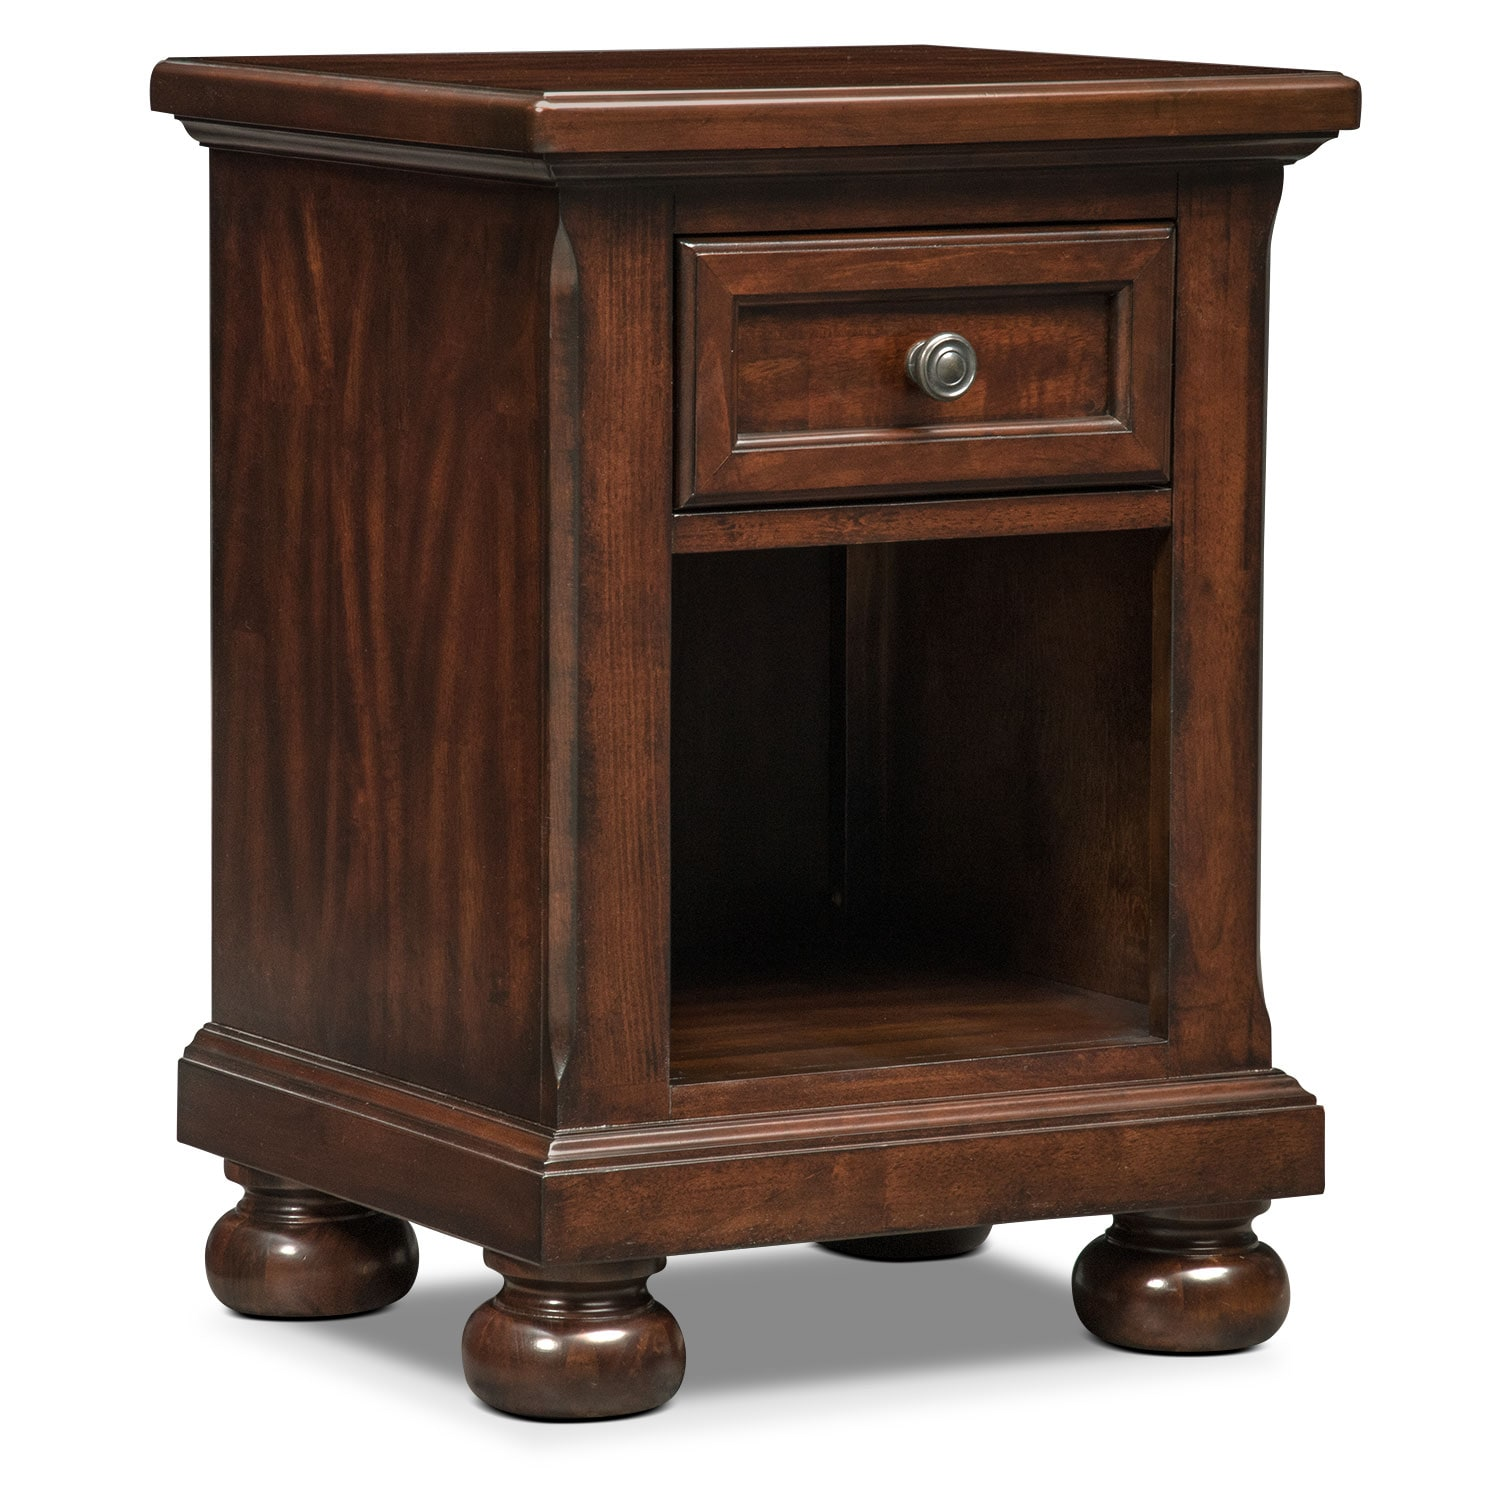 Bedroom Furniture - Hanover Youth Nightstand - Cherry